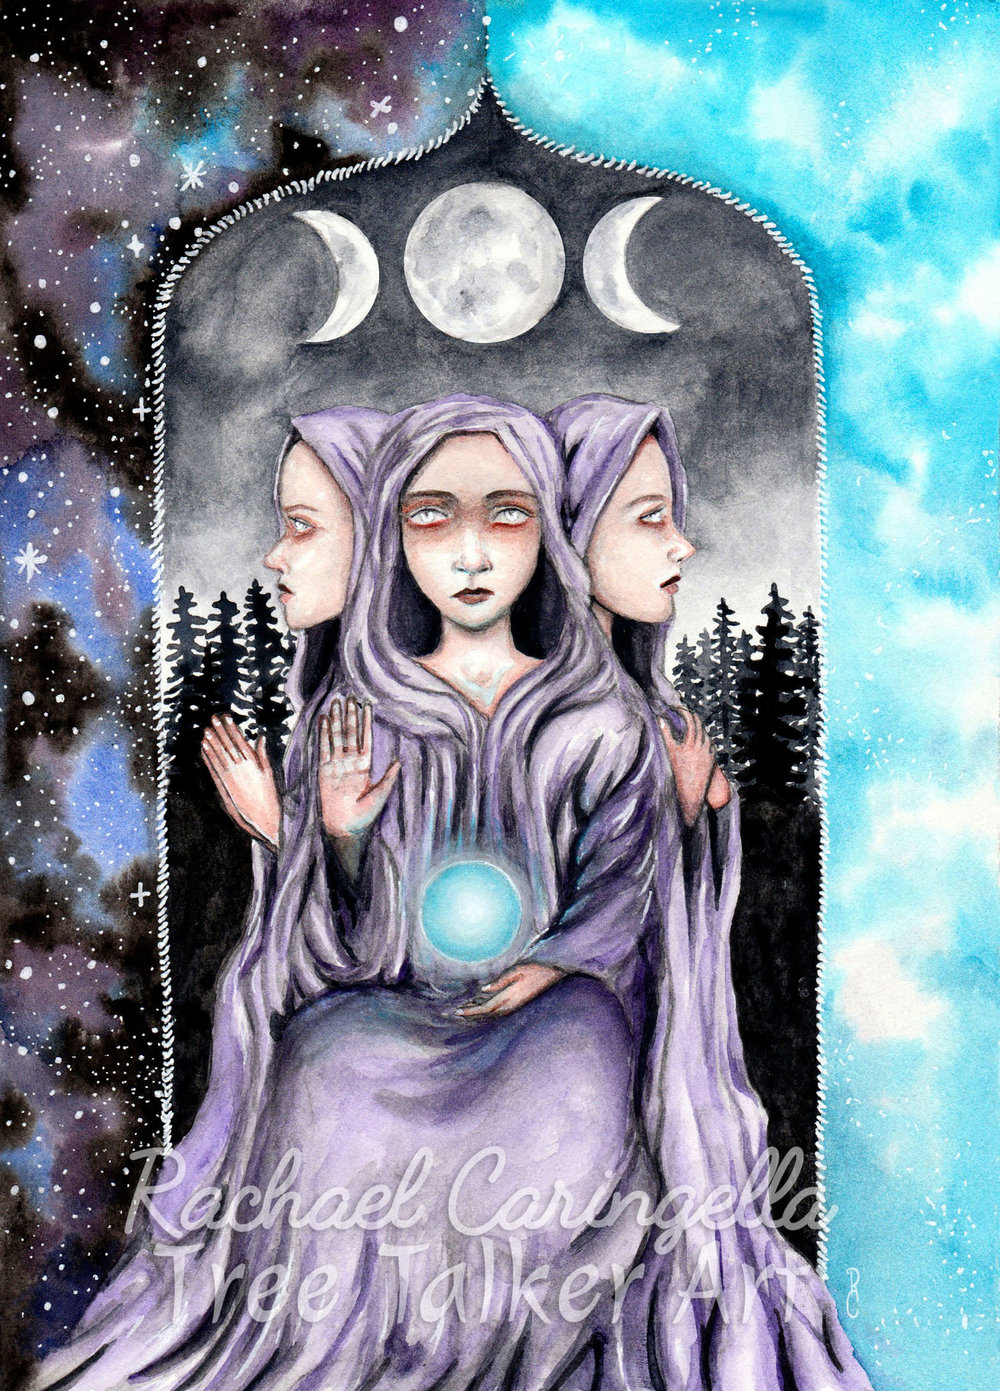 The High Priestess - Tarot Card Art- Rachael Caringella - Tree Talker Art